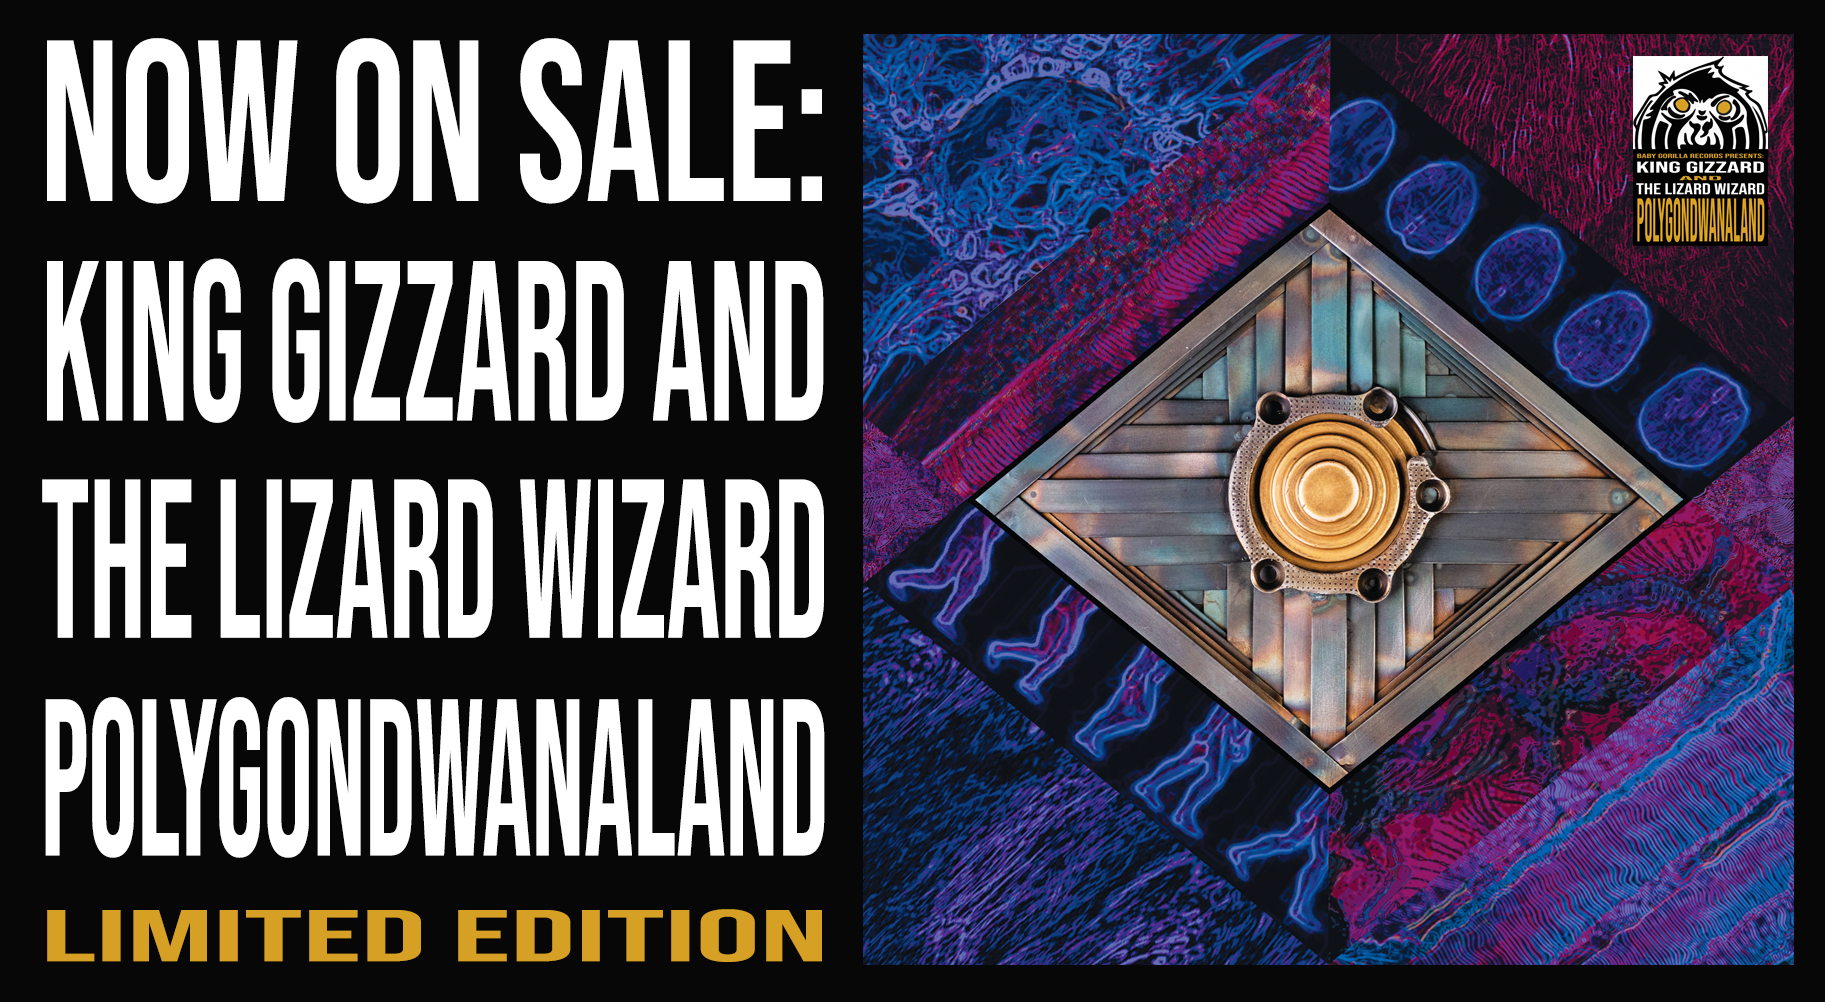 Polygondwanaland - Sale